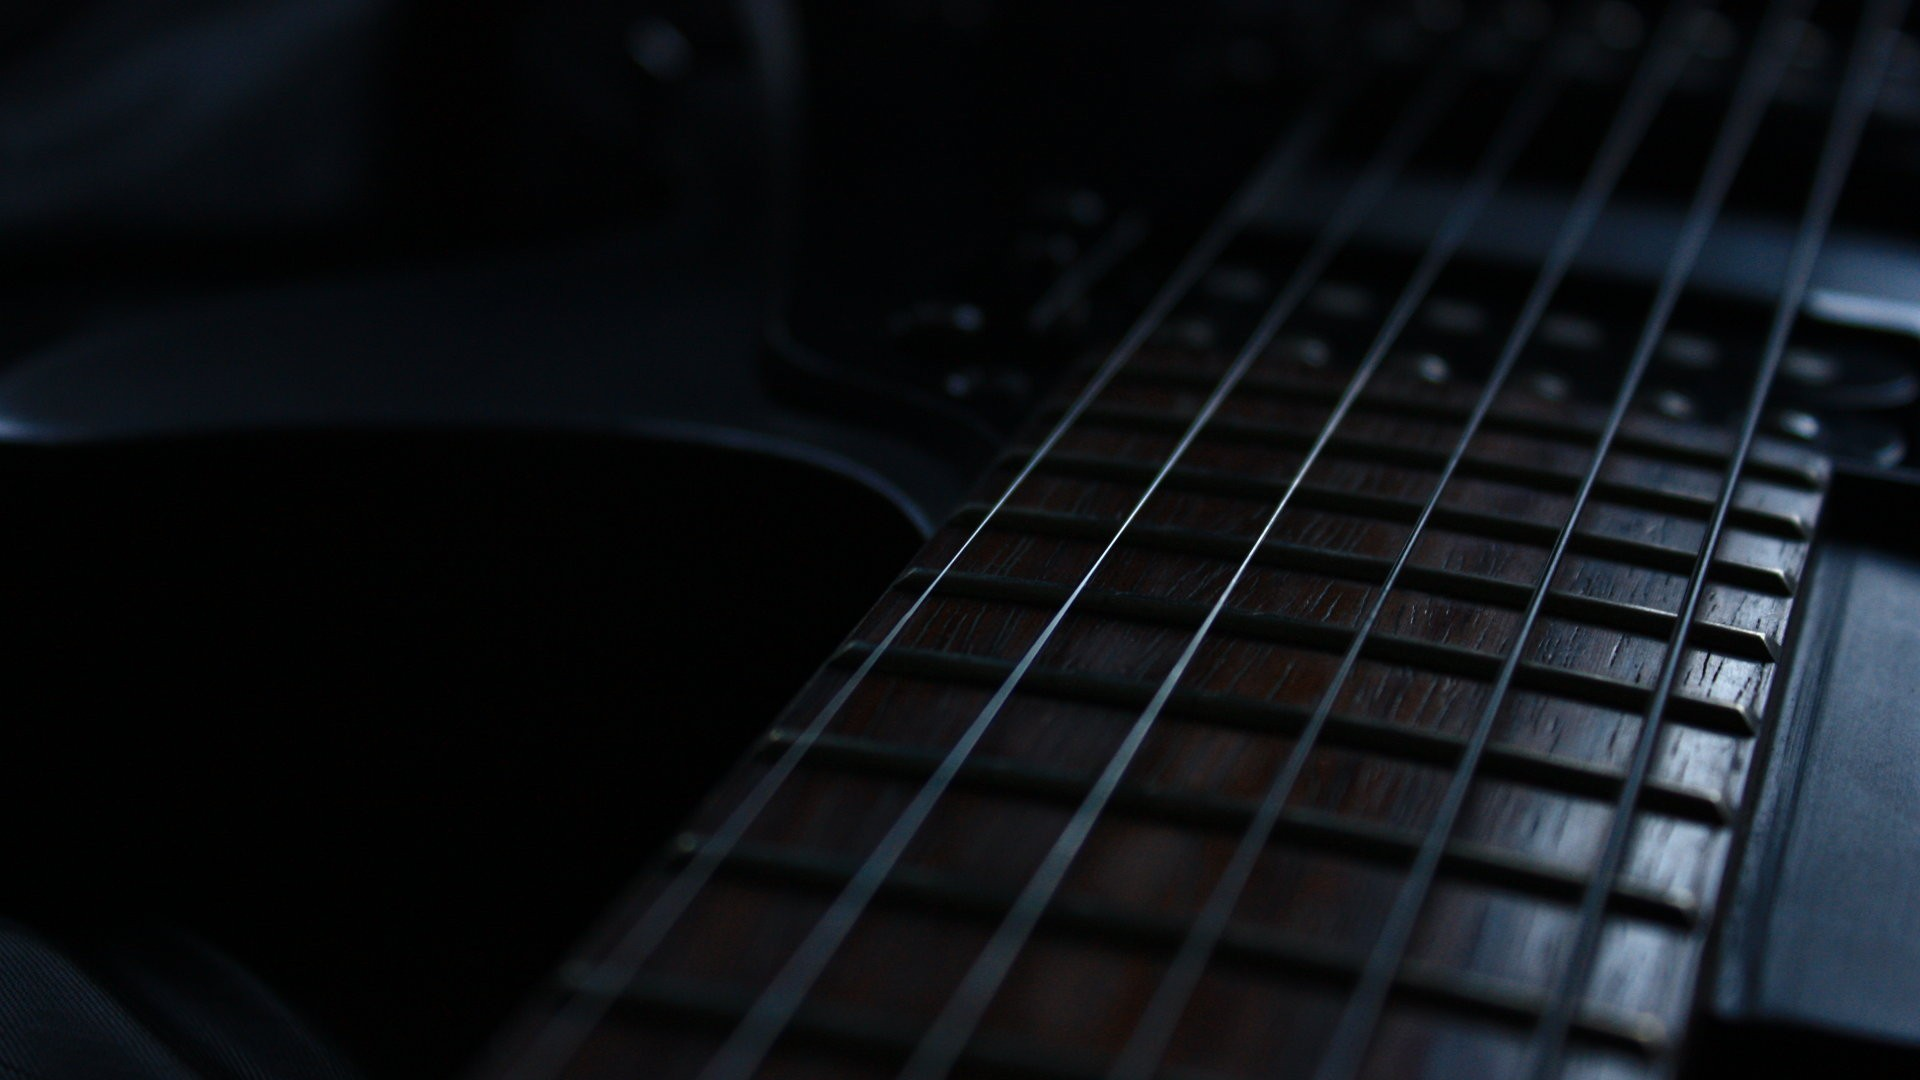 1920x1080 guitar strings wallpaper 58788